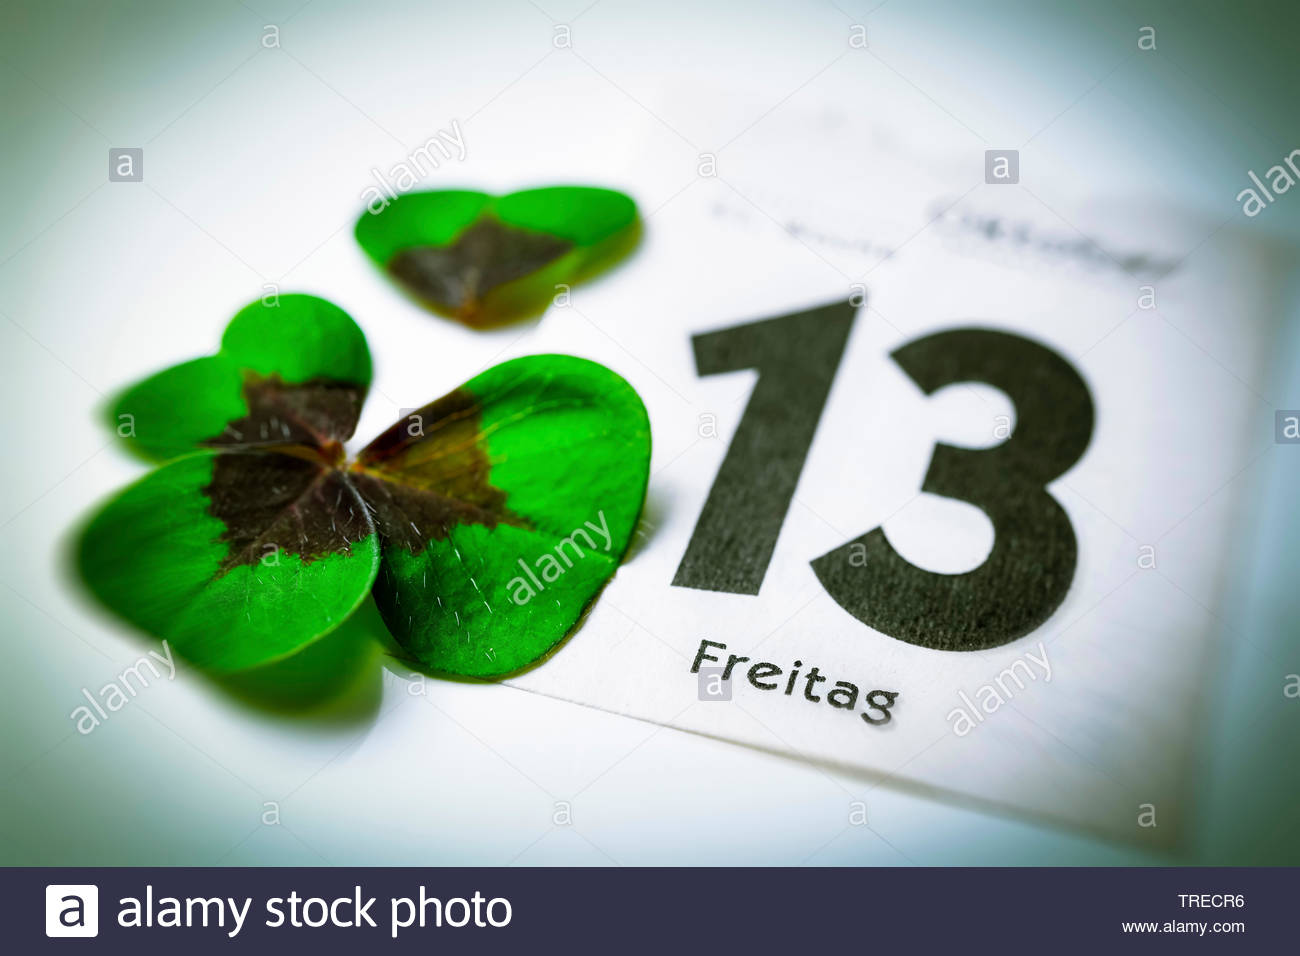 Kalenderblatt Freitag der 13. und zerrissenes Kleeblatt, Deutschland | calender sheet Friday the 13th and broken cloverleaf, Germany | BLWS523135.jpg - Stock Image